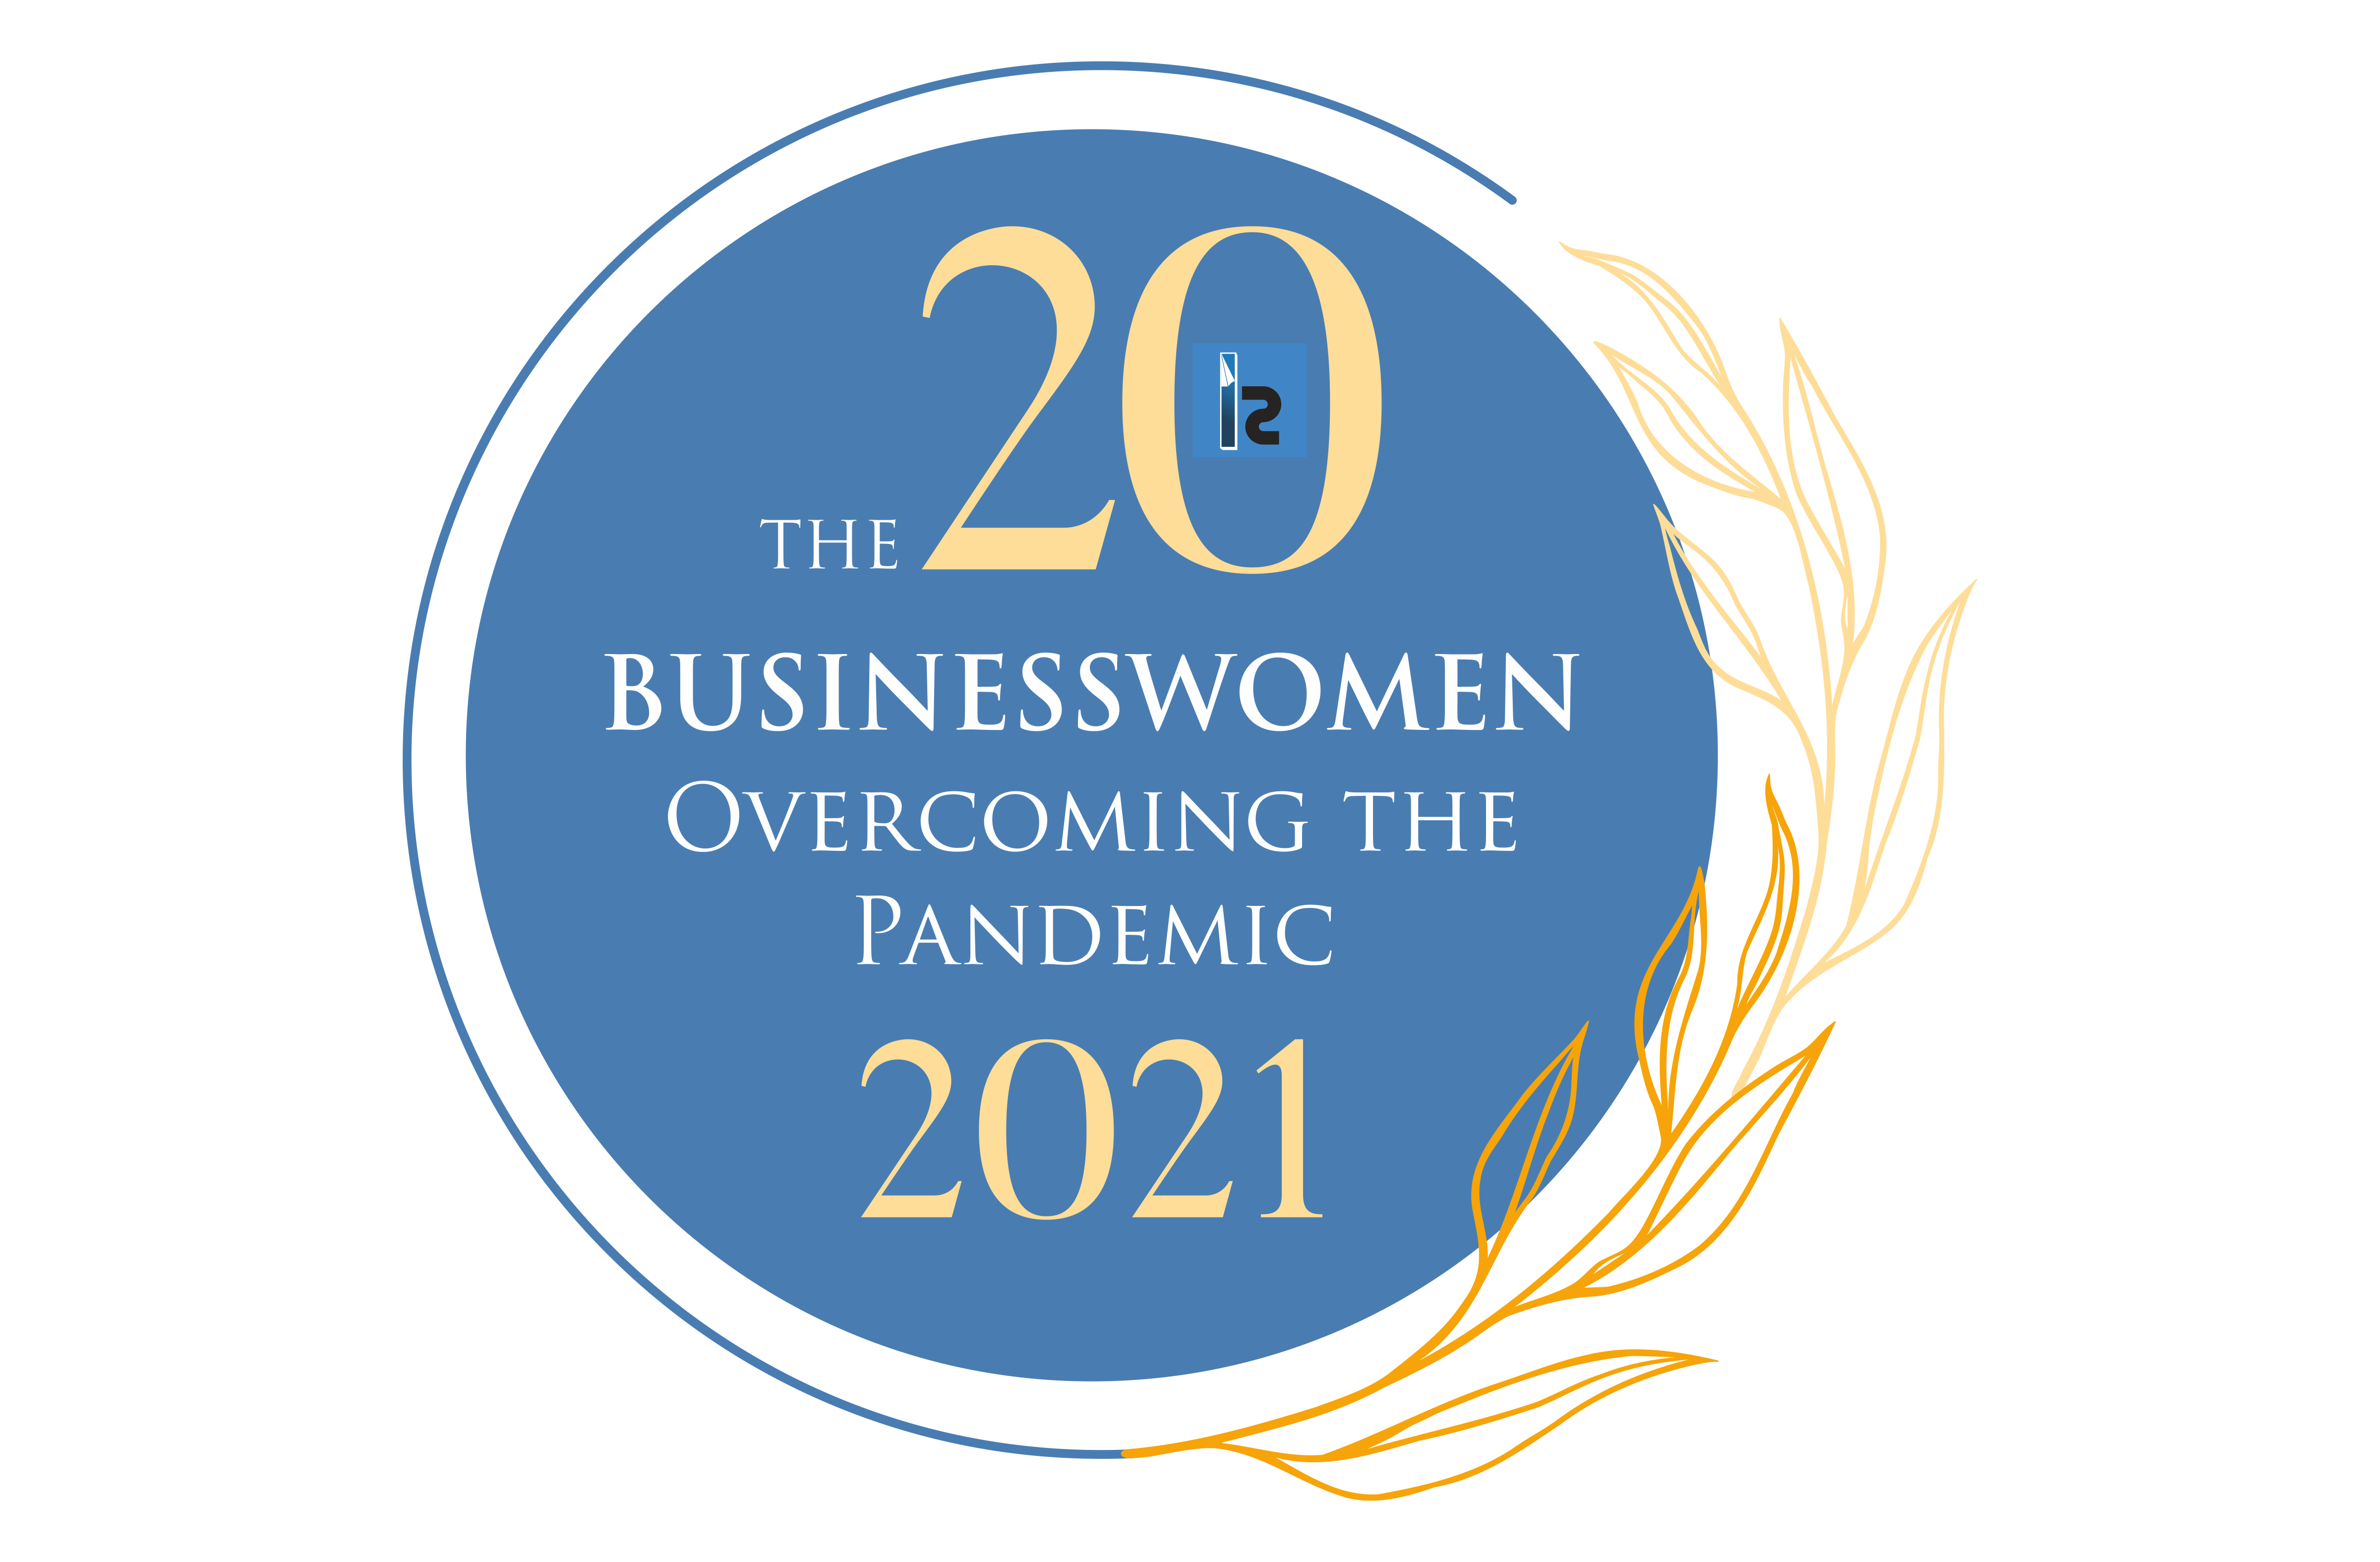 The 20 Businesswomen Overcoming the Pandemic 2021